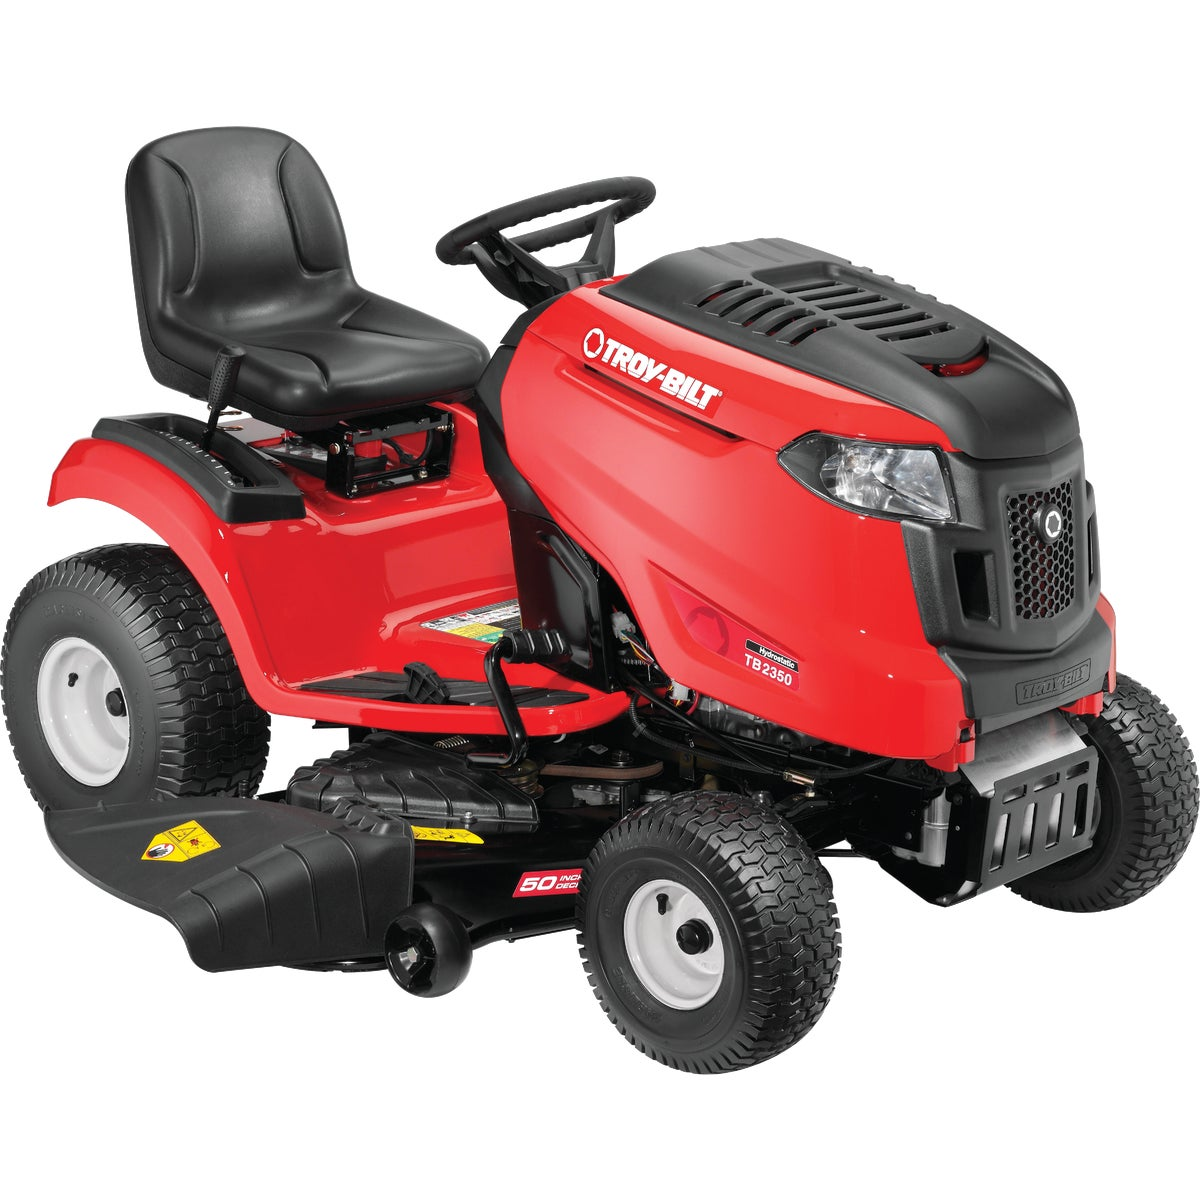 "50"" LAWN TRACTOR - 13AA92KP066 by M T D Products"